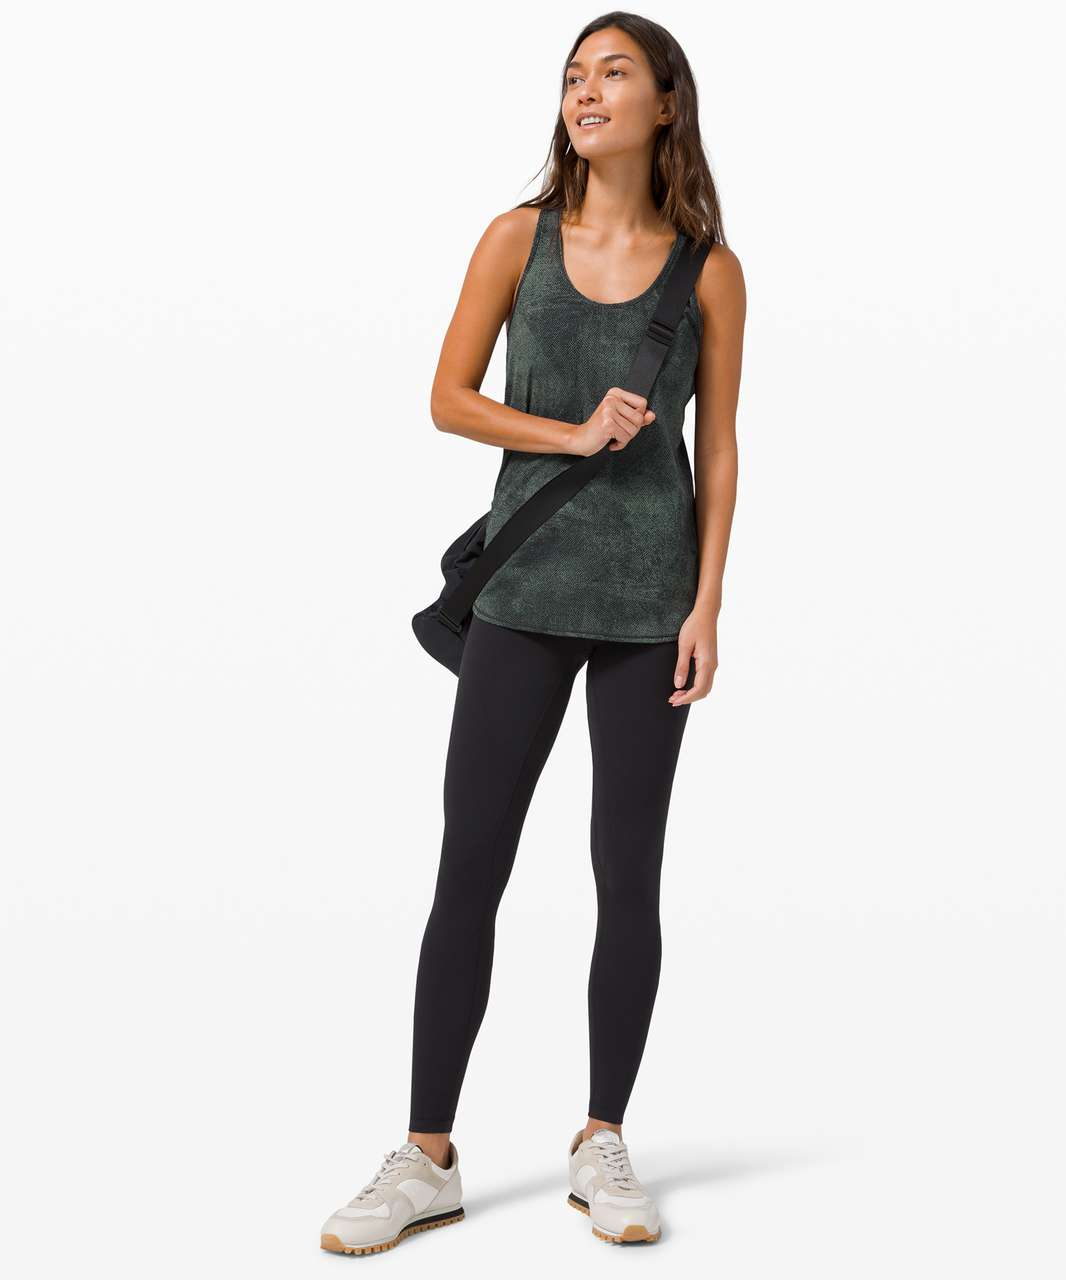 Lululemon Essential Tank *Pleated - Pixel Jacquard Algae Green Black